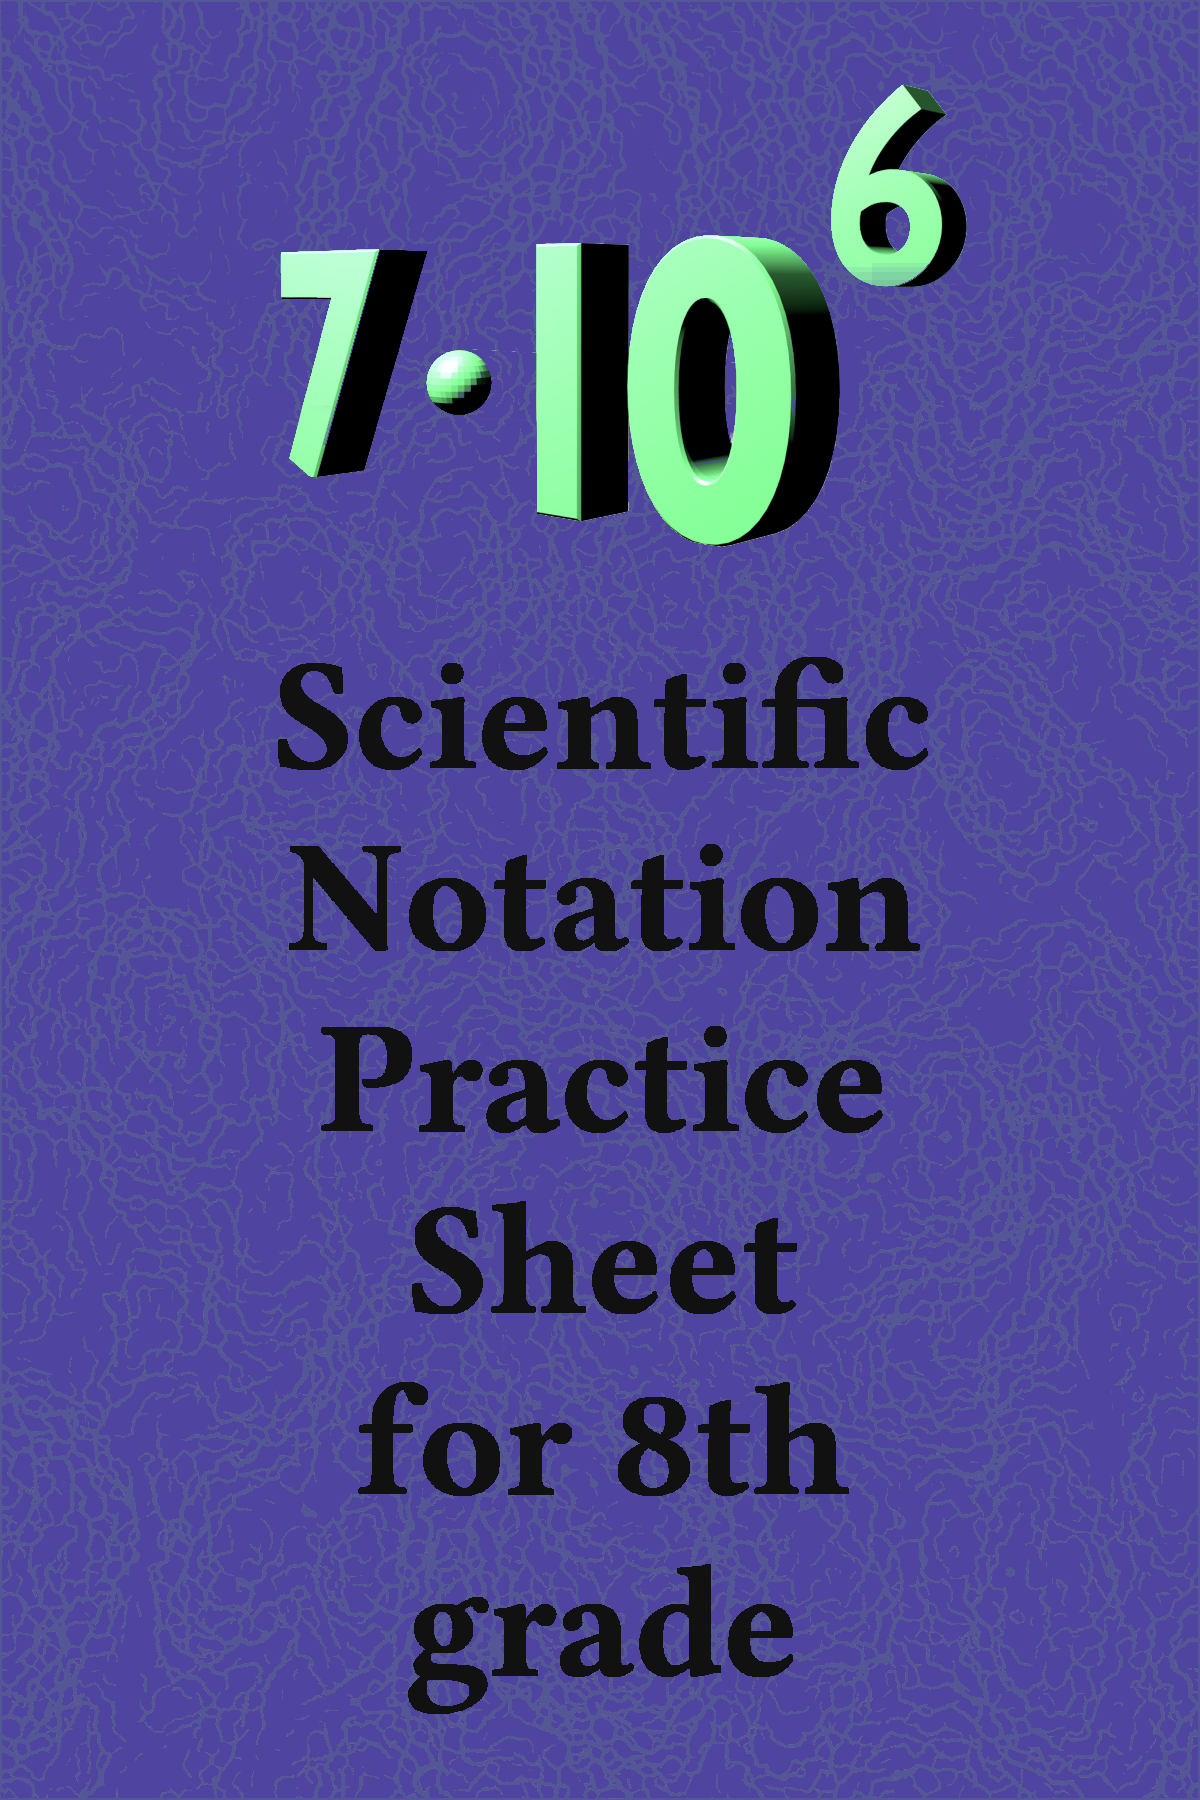 Scientific Notation Worksheet Conversions To From Standard Notation 8 Ee A 3 Scientific Notation Scientific Notation Worksheet Notations [ 1800 x 1200 Pixel ]